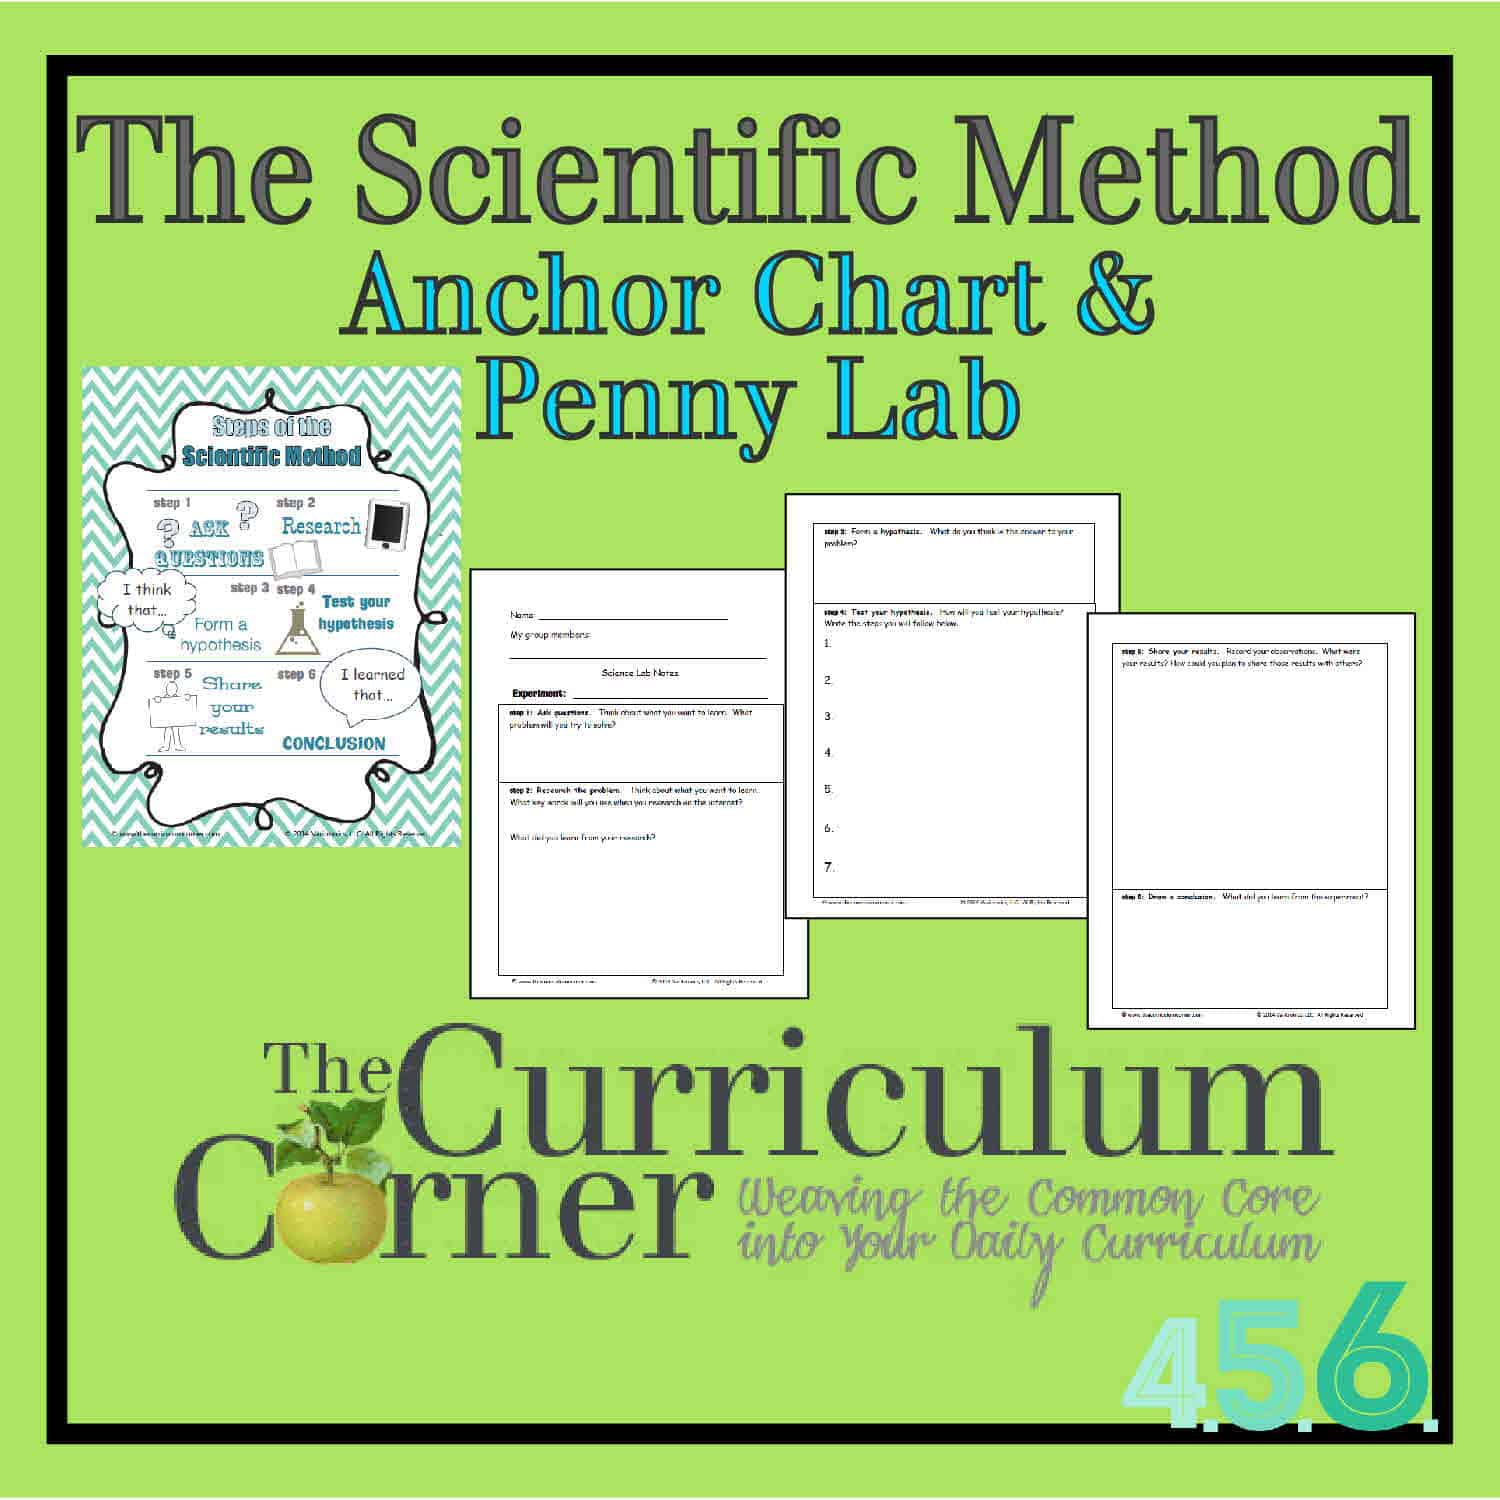 The Scientific Method Anchor Chart & Penny Experiment